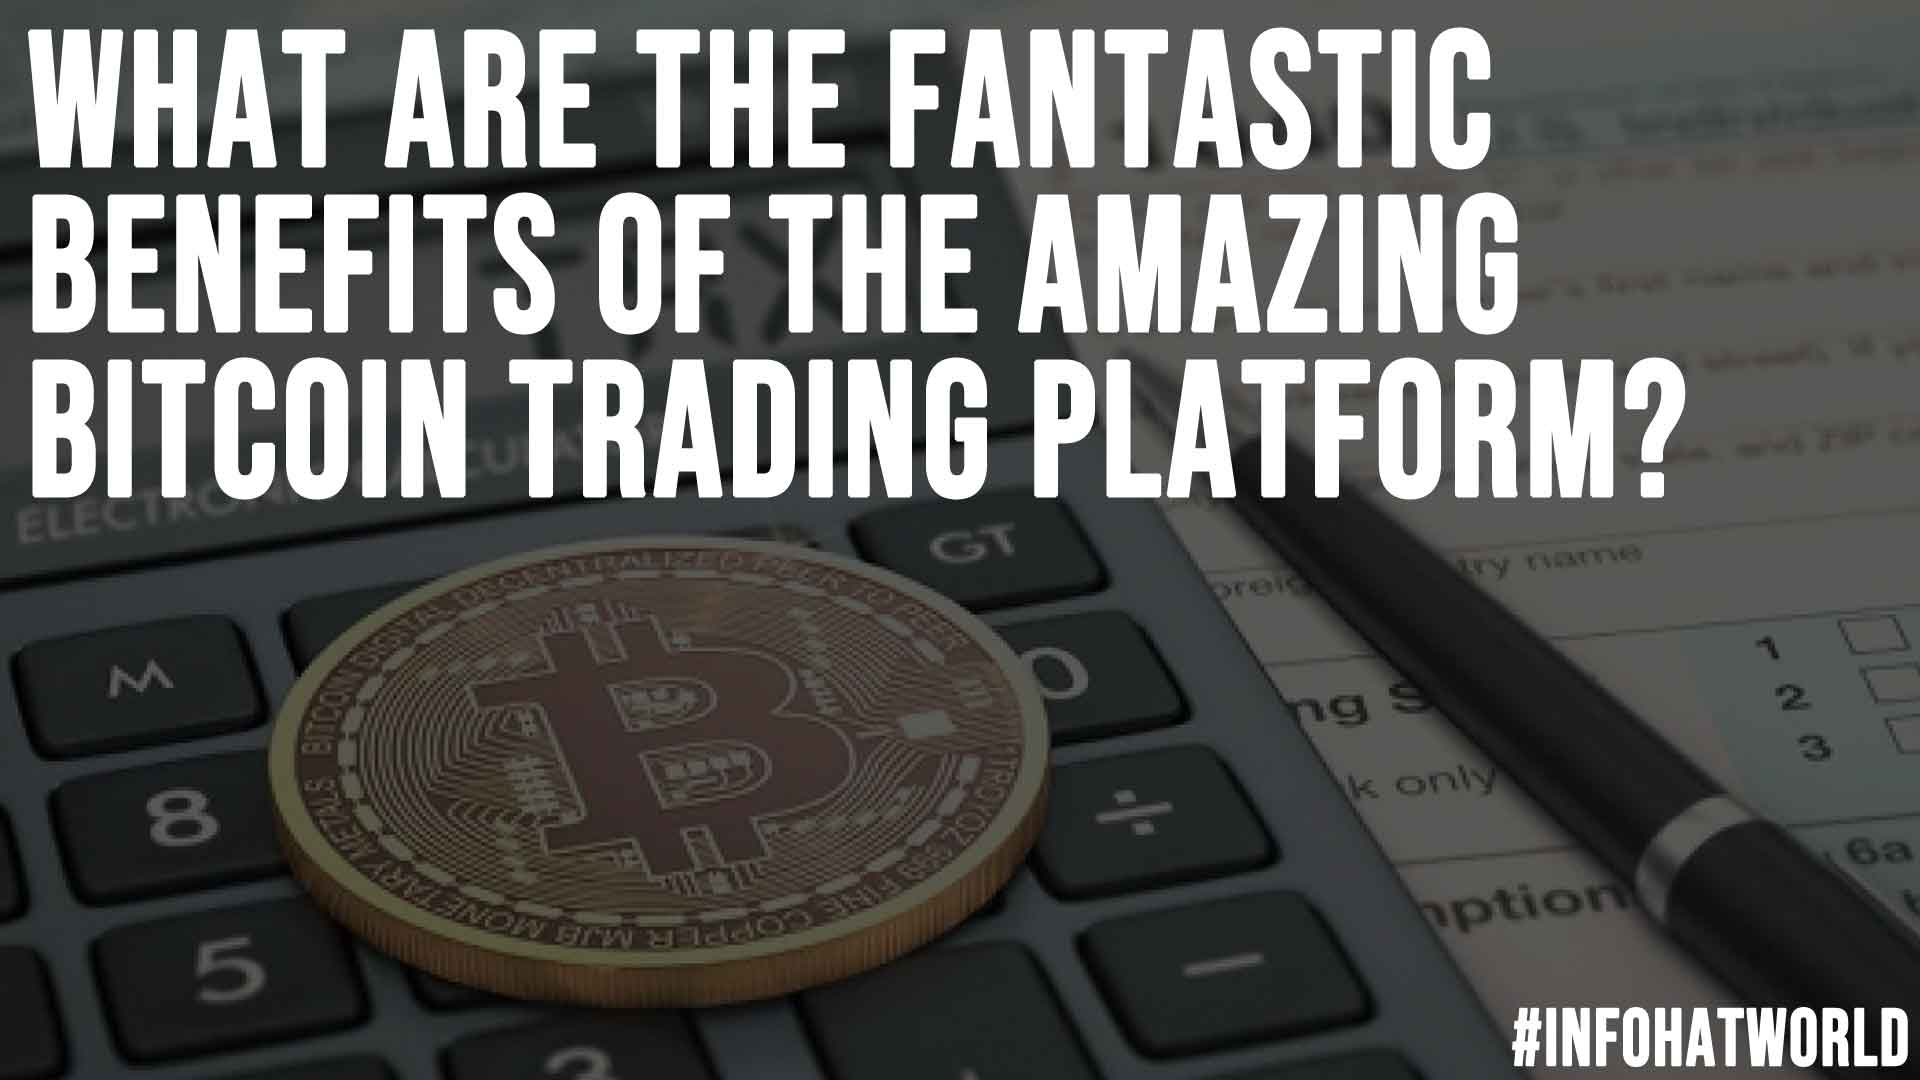 What Are The Fantastic Benefits of the Amazing Bitcoin Trading Platform